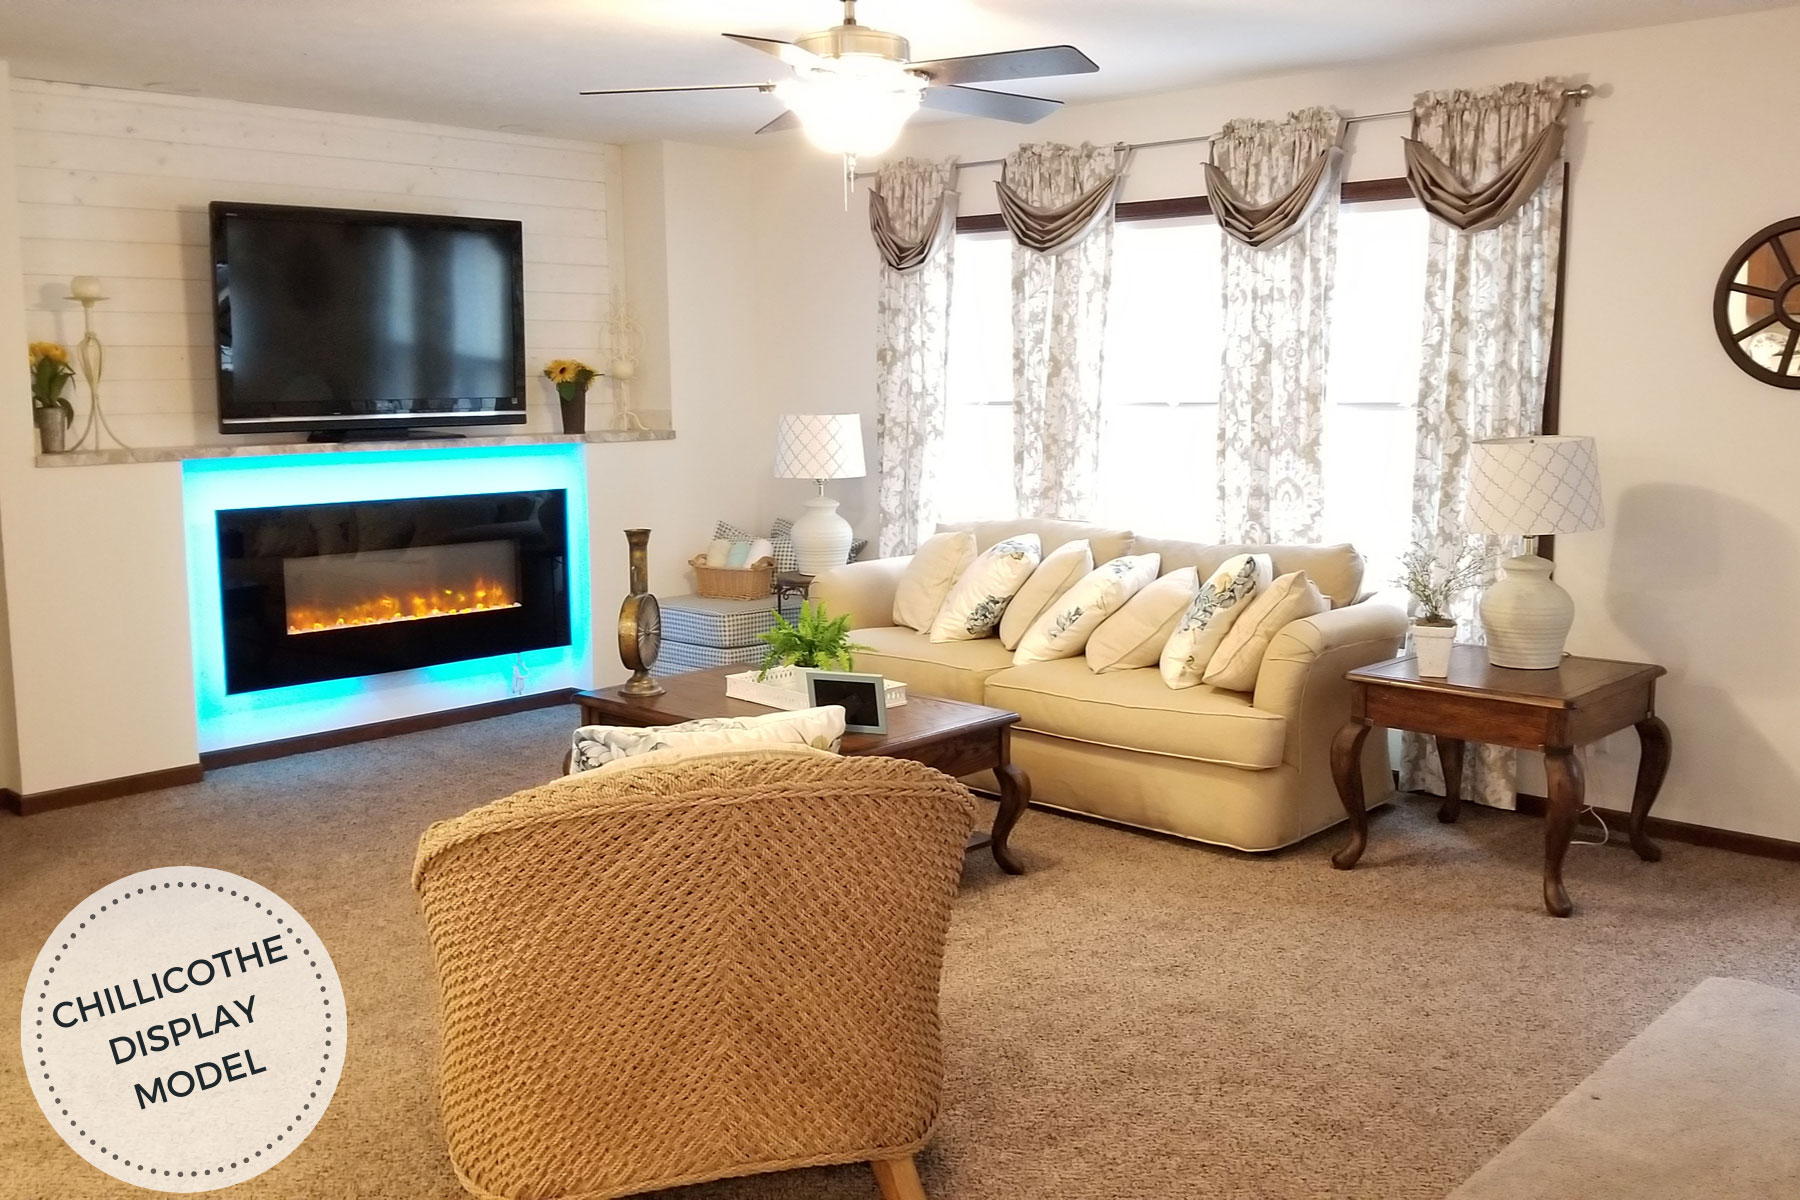 Commodore-Limited-3-RX-780-Chillicothe-Living-Room-1